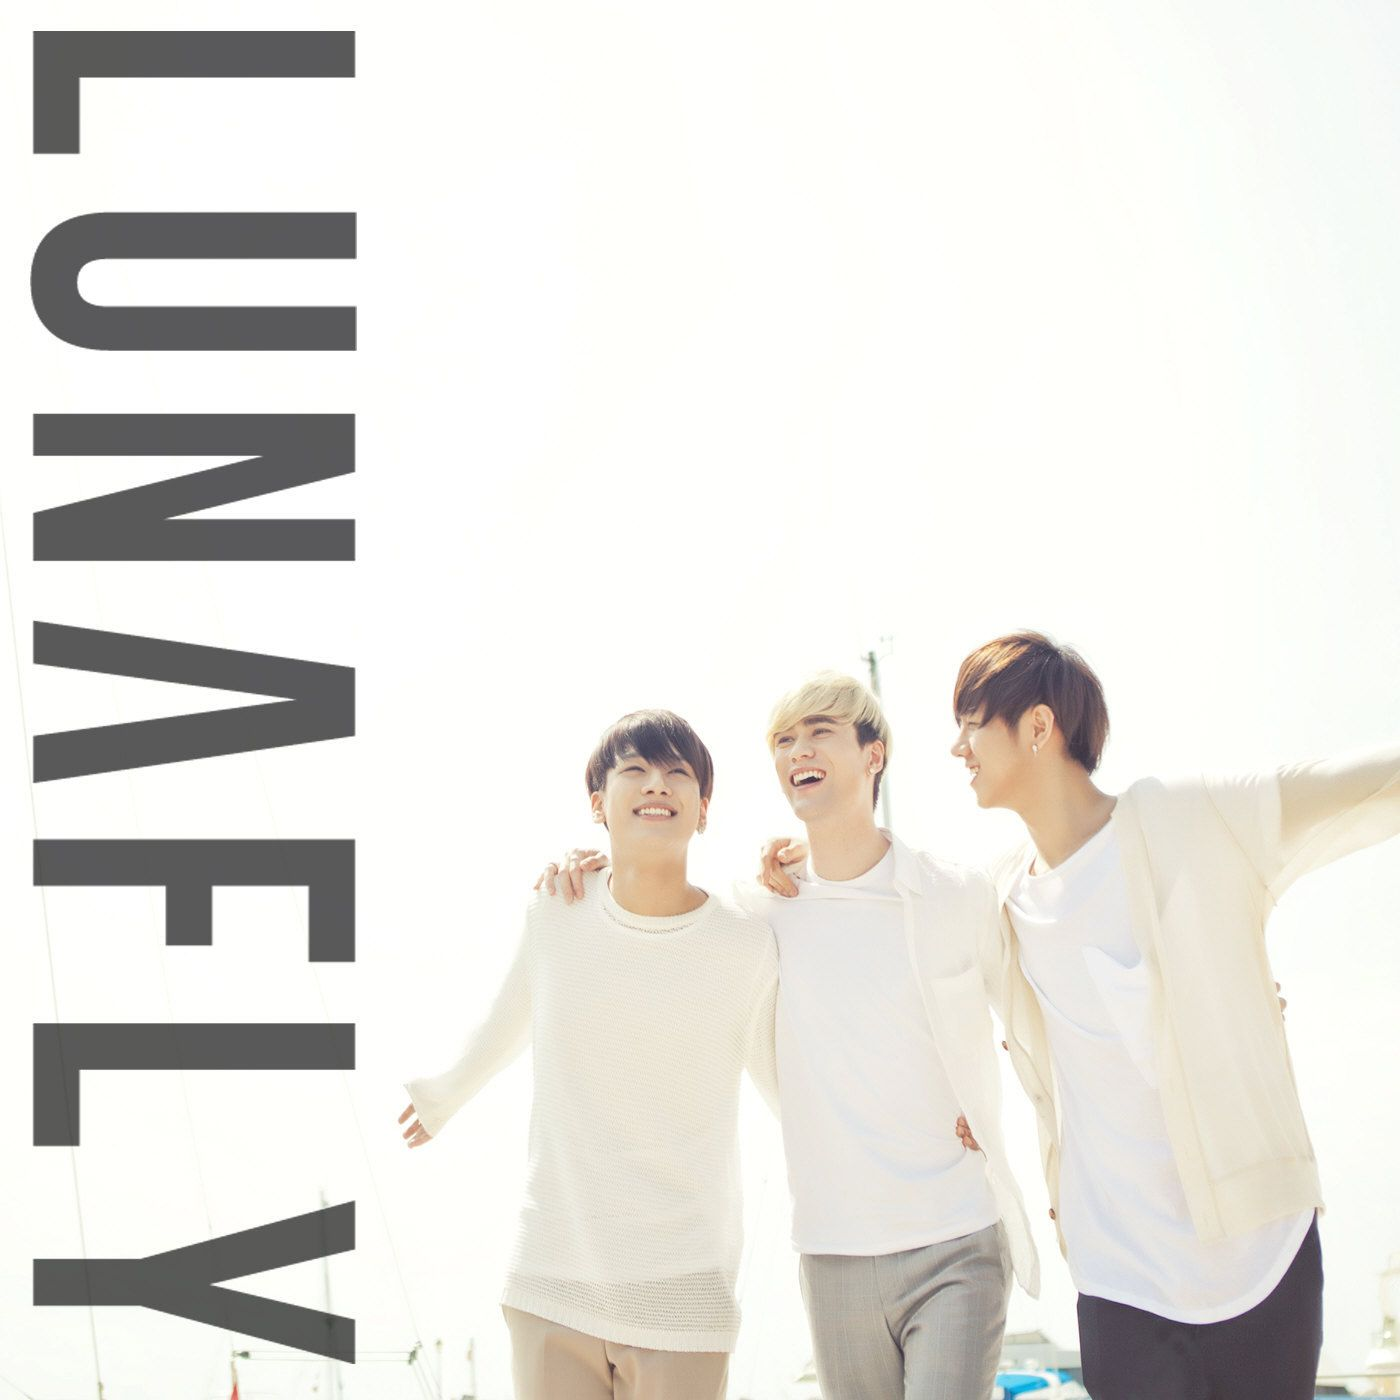 [Single] Lunafly - YEOWOOYA